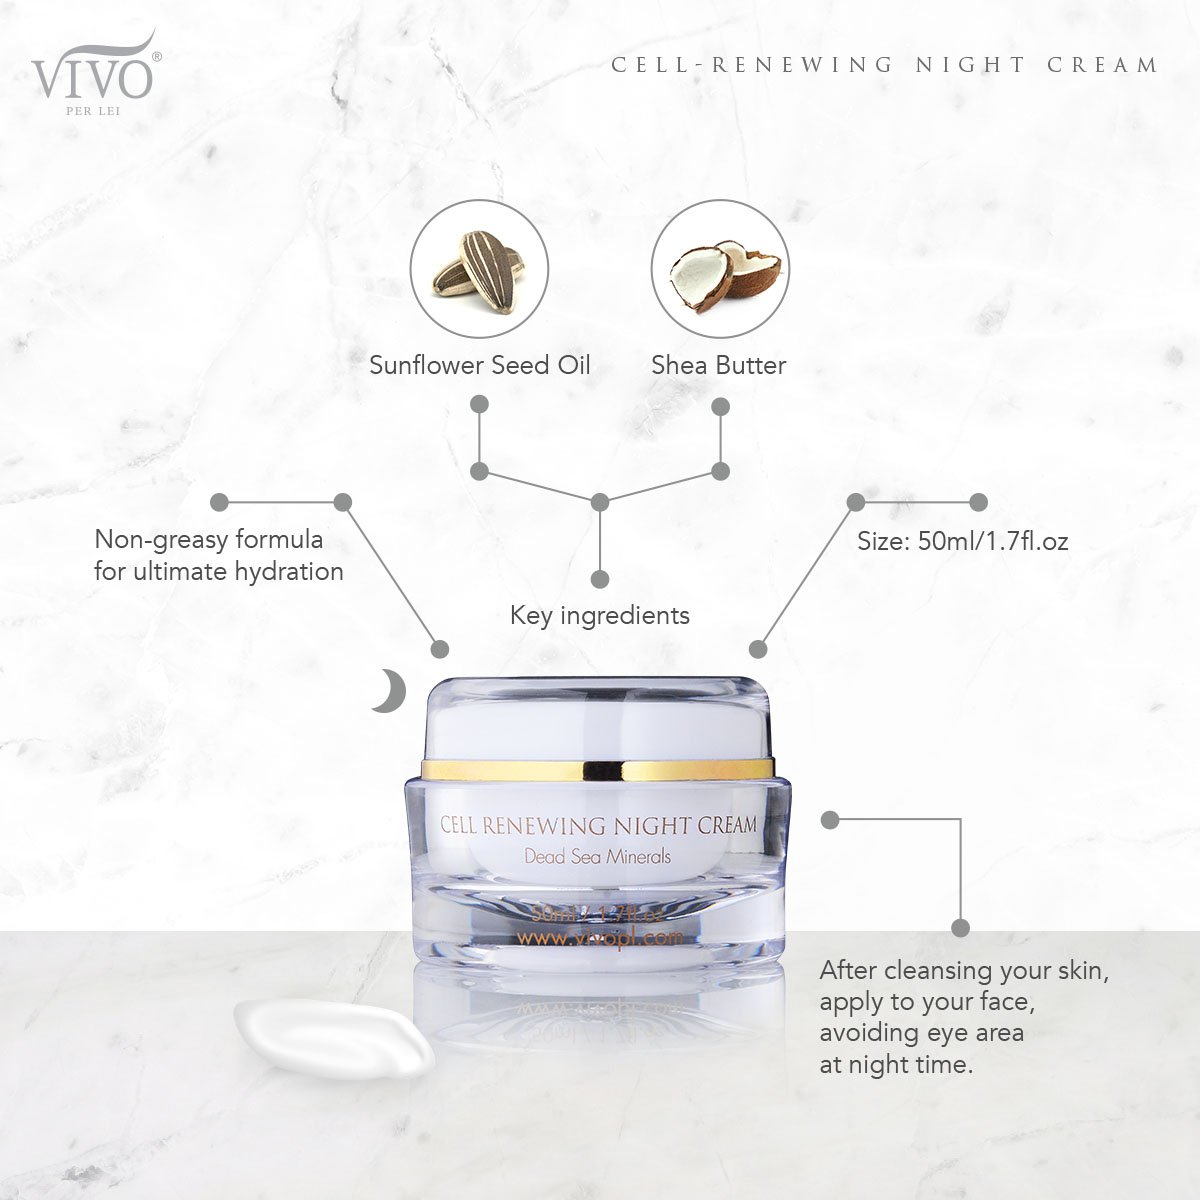 Vivo Per Lei Cell Renewal Night Cream, Nourishing Your Skin with Oil-Free Moisture, 1.7 Fl. Oz, Pack of 3